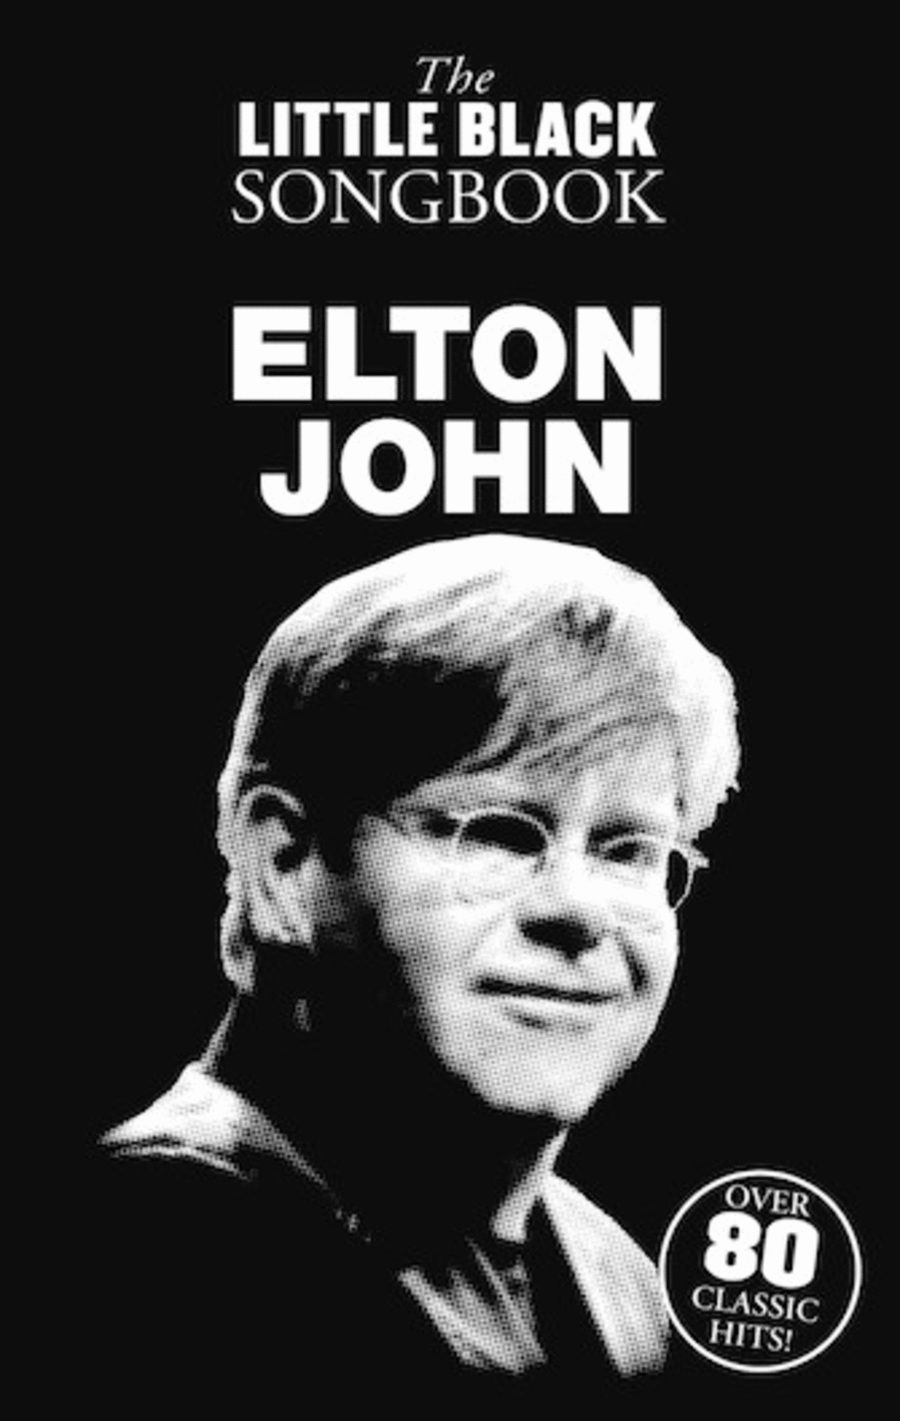 Elton John - The Little Black Songbook